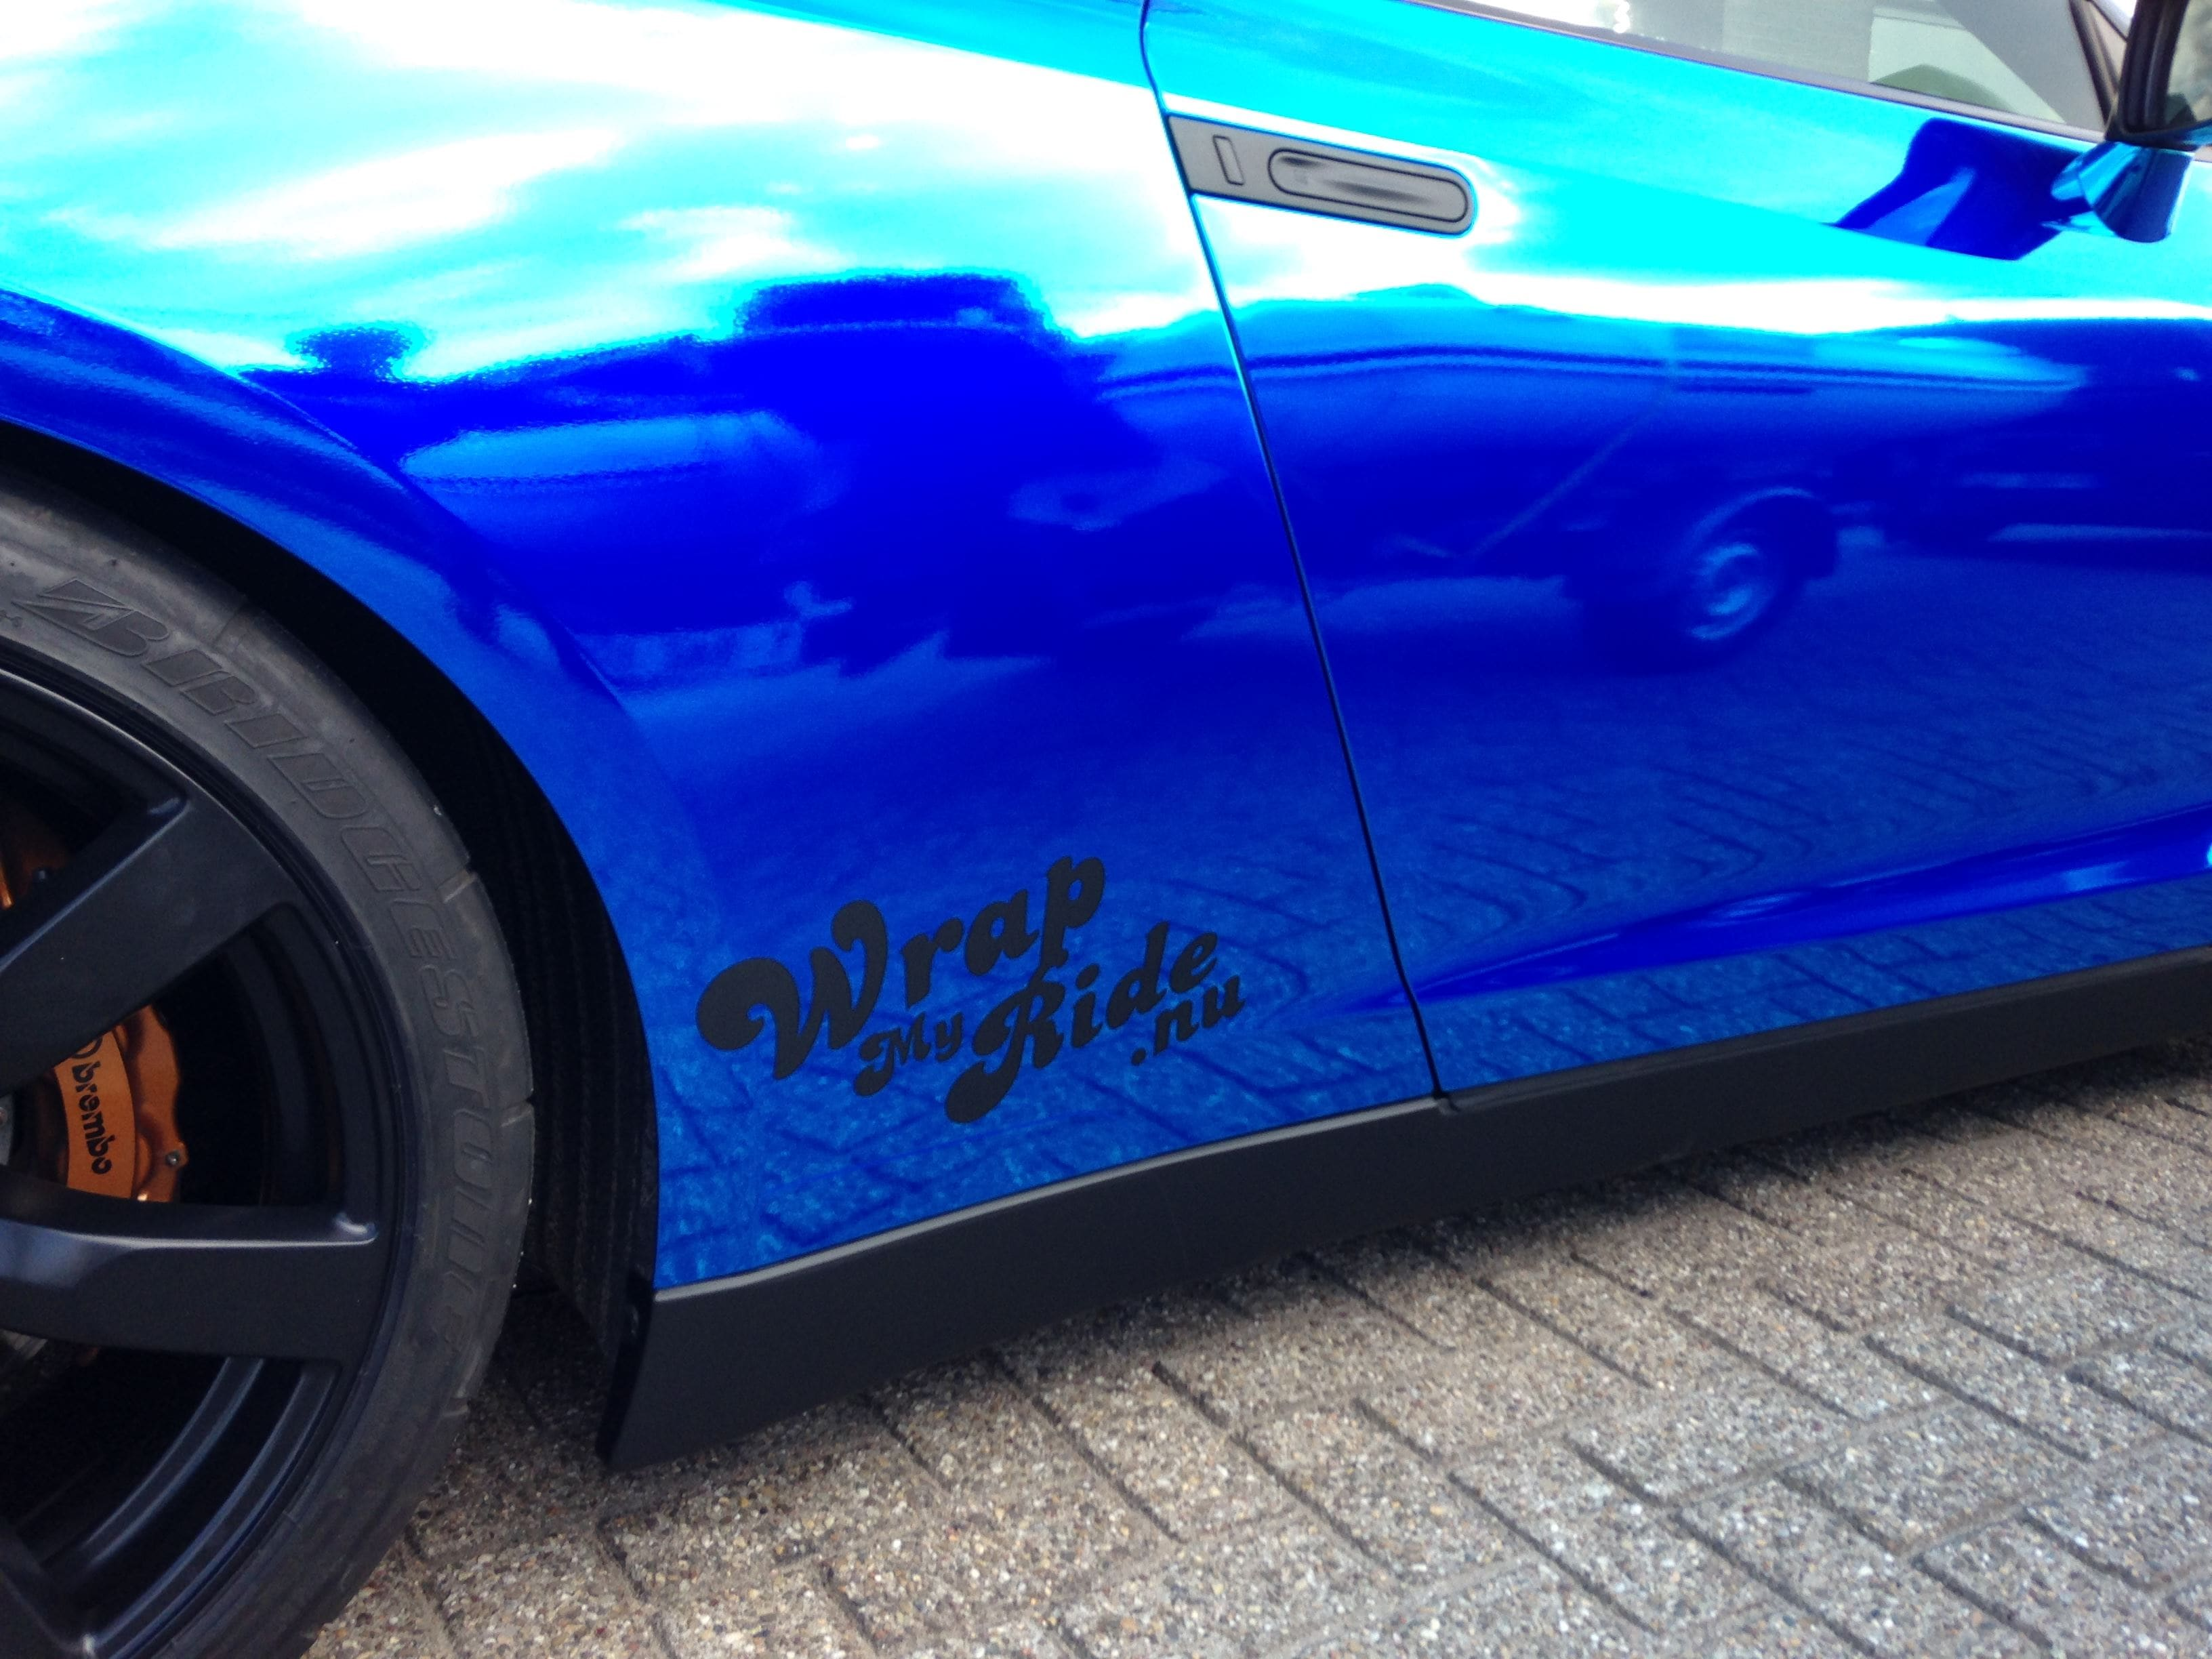 Nissan GT-R met Blue Chrome Wrap, Carwrapping door Wrapmyride.nu Foto-nr:6464, ©2020